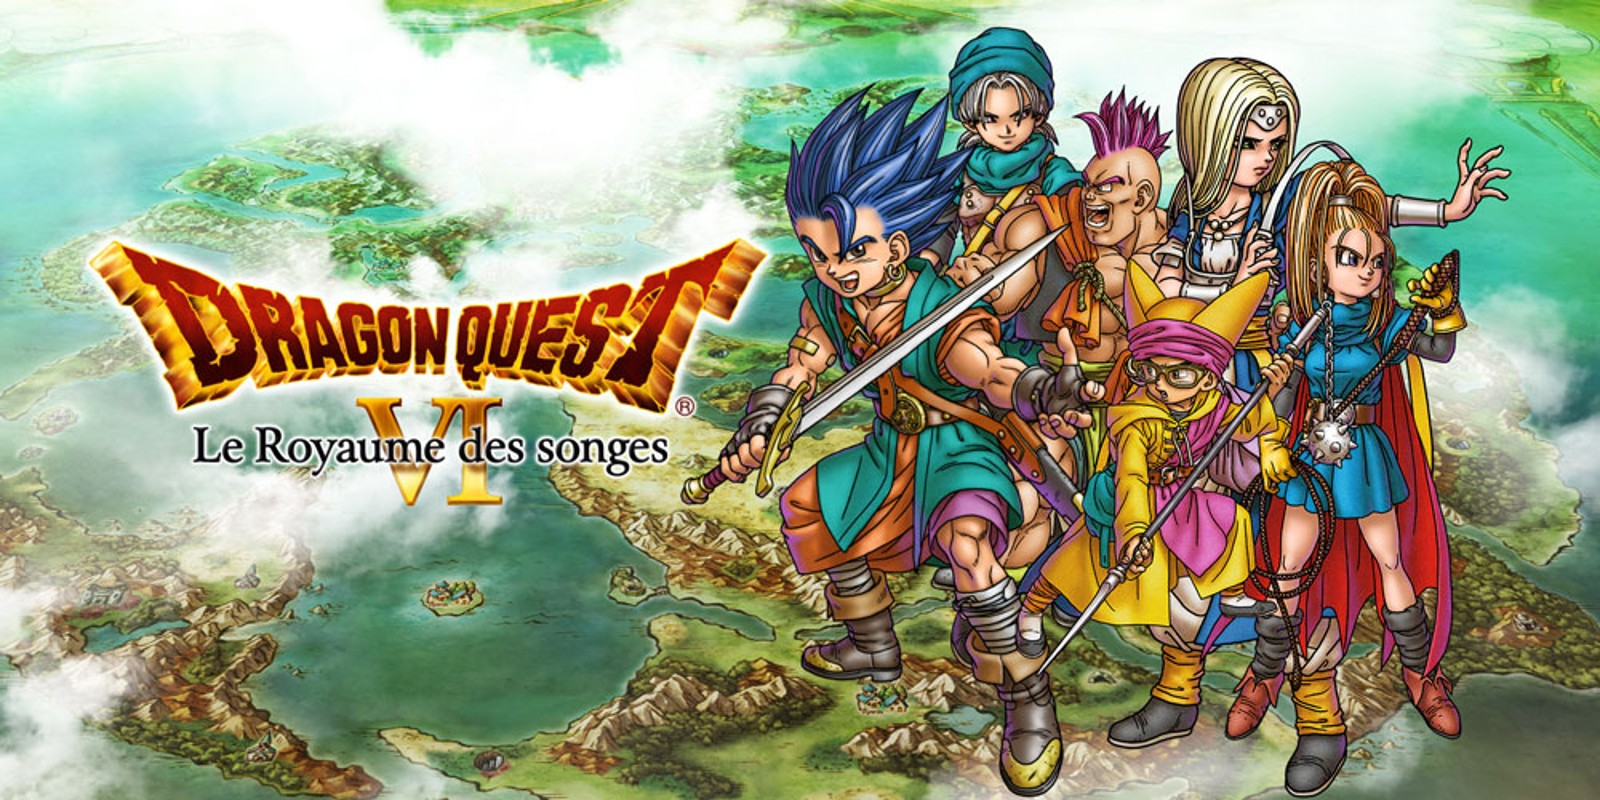 DRAGON QUEST VI: Le royaume des songes